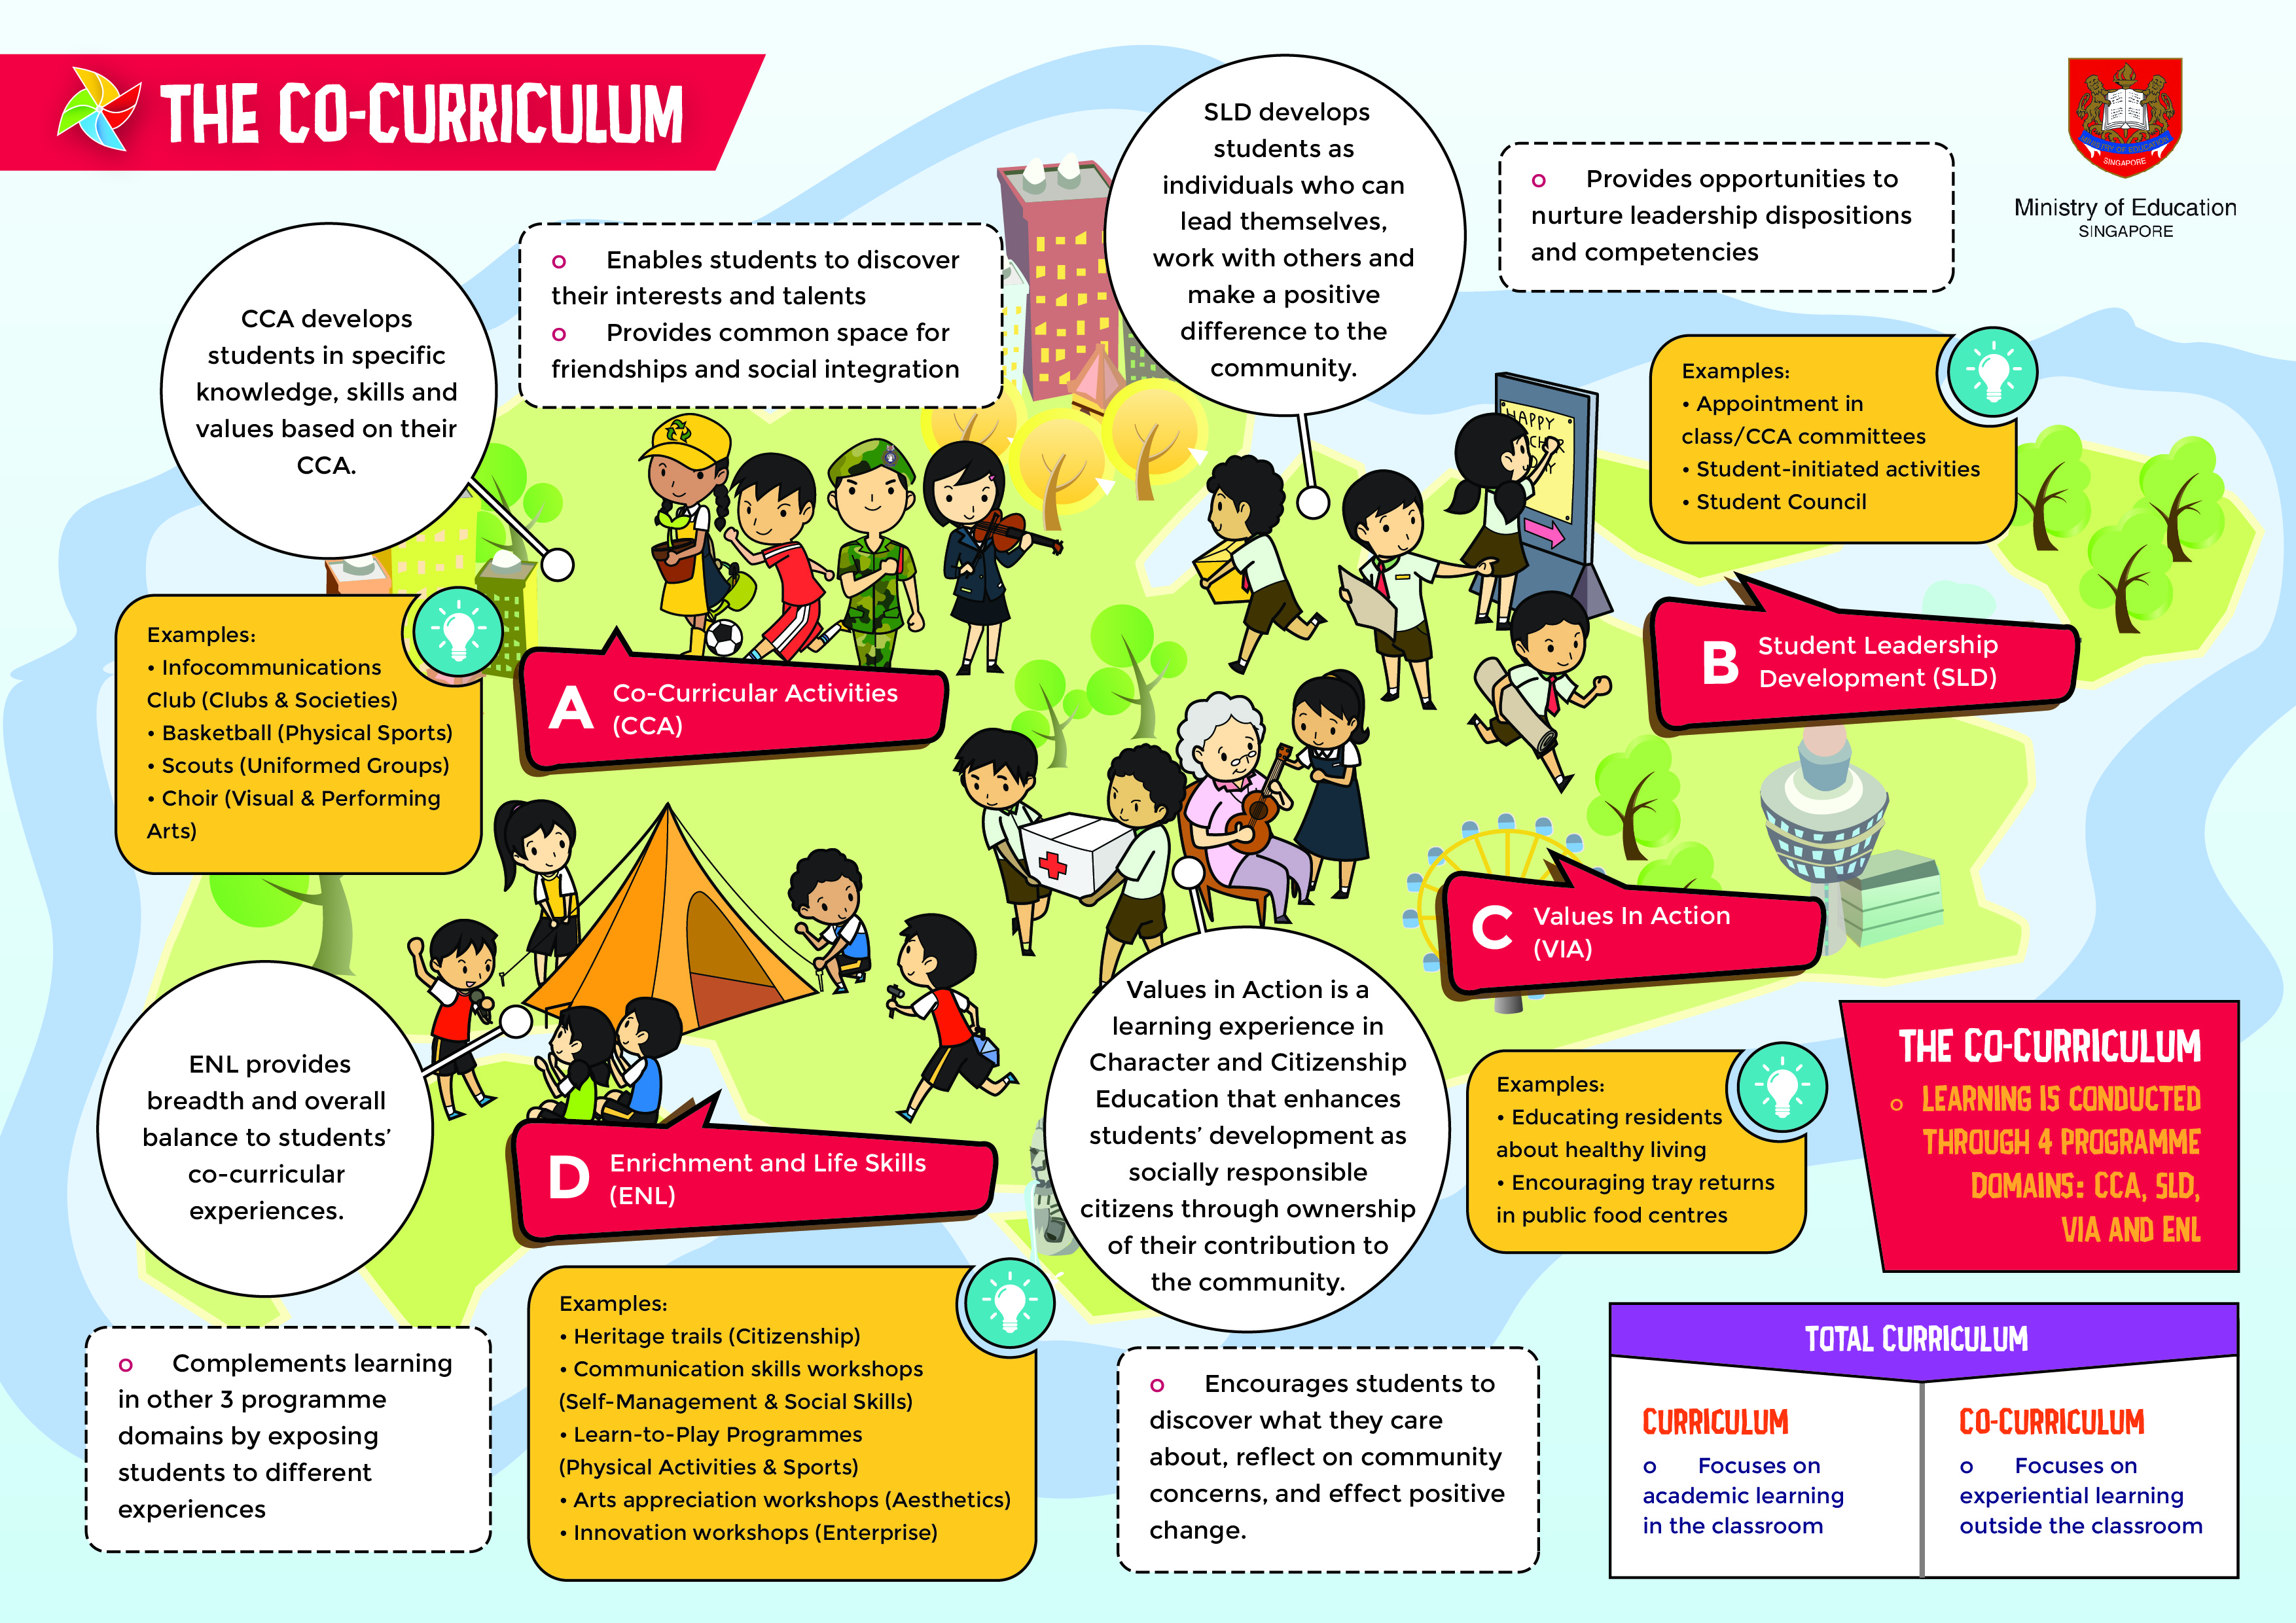 01_Overview of Co-Curriculum (1).jpg